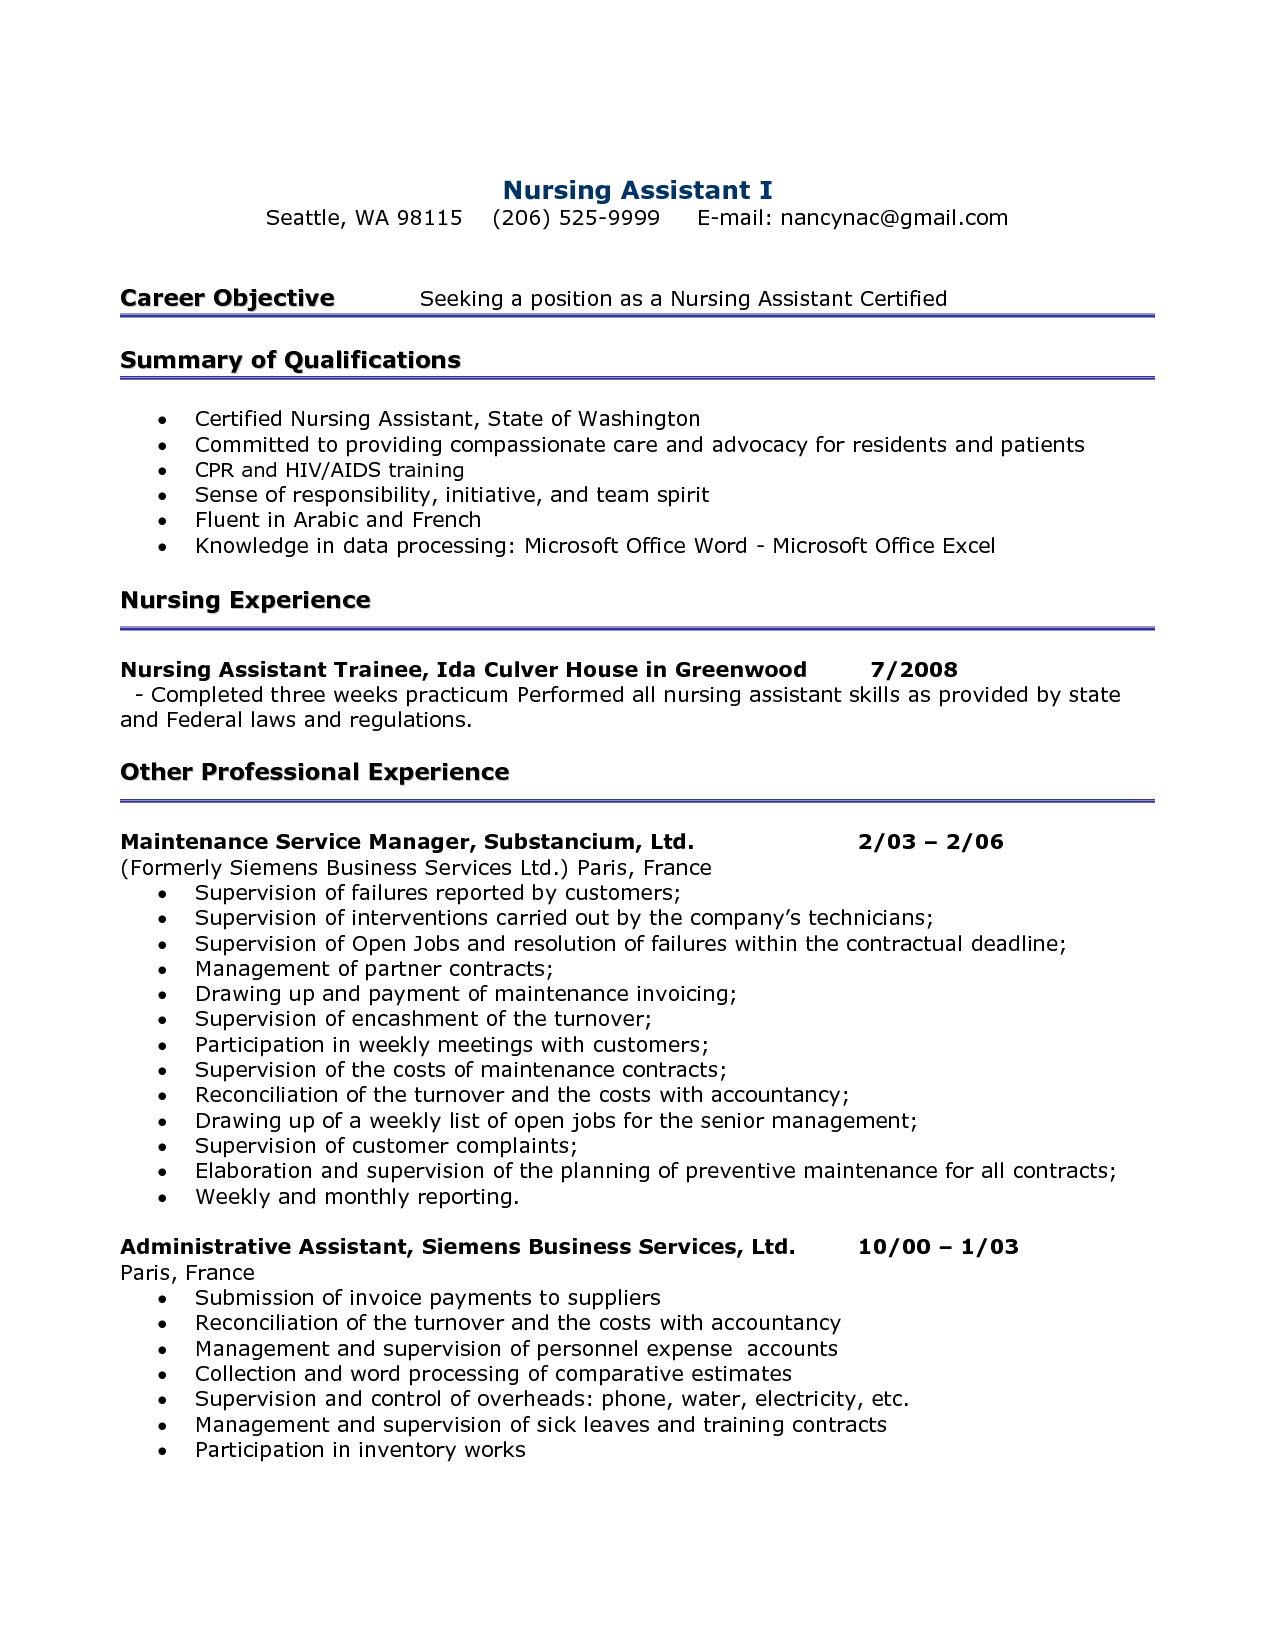 Attractive Certified Nursing Assistant Resume   Http://www.resumecareer.info/certified Pertaining To Nurse Assistant Resume